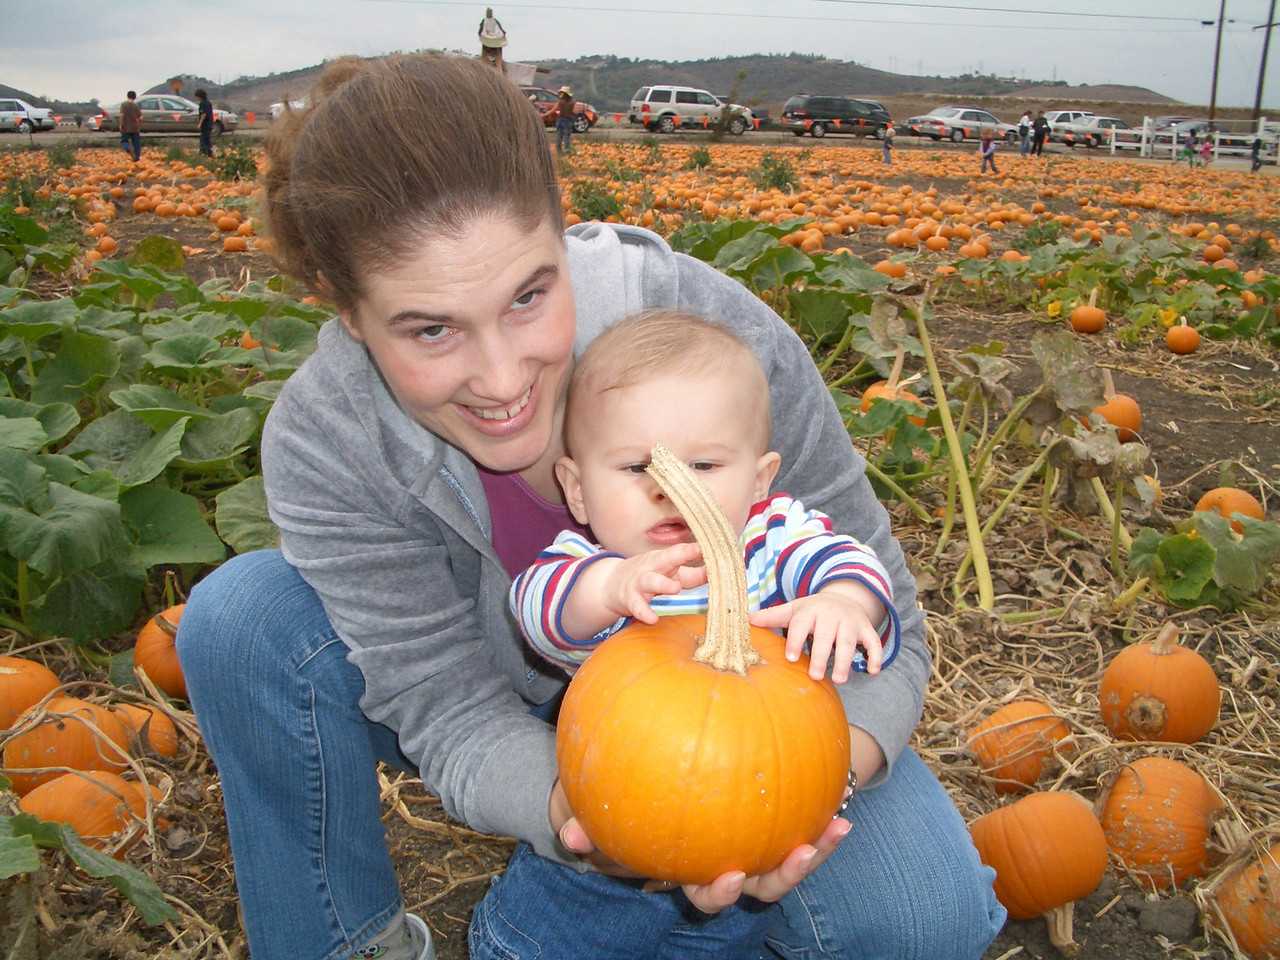 Here is our small pumkin that we picked. 10/15